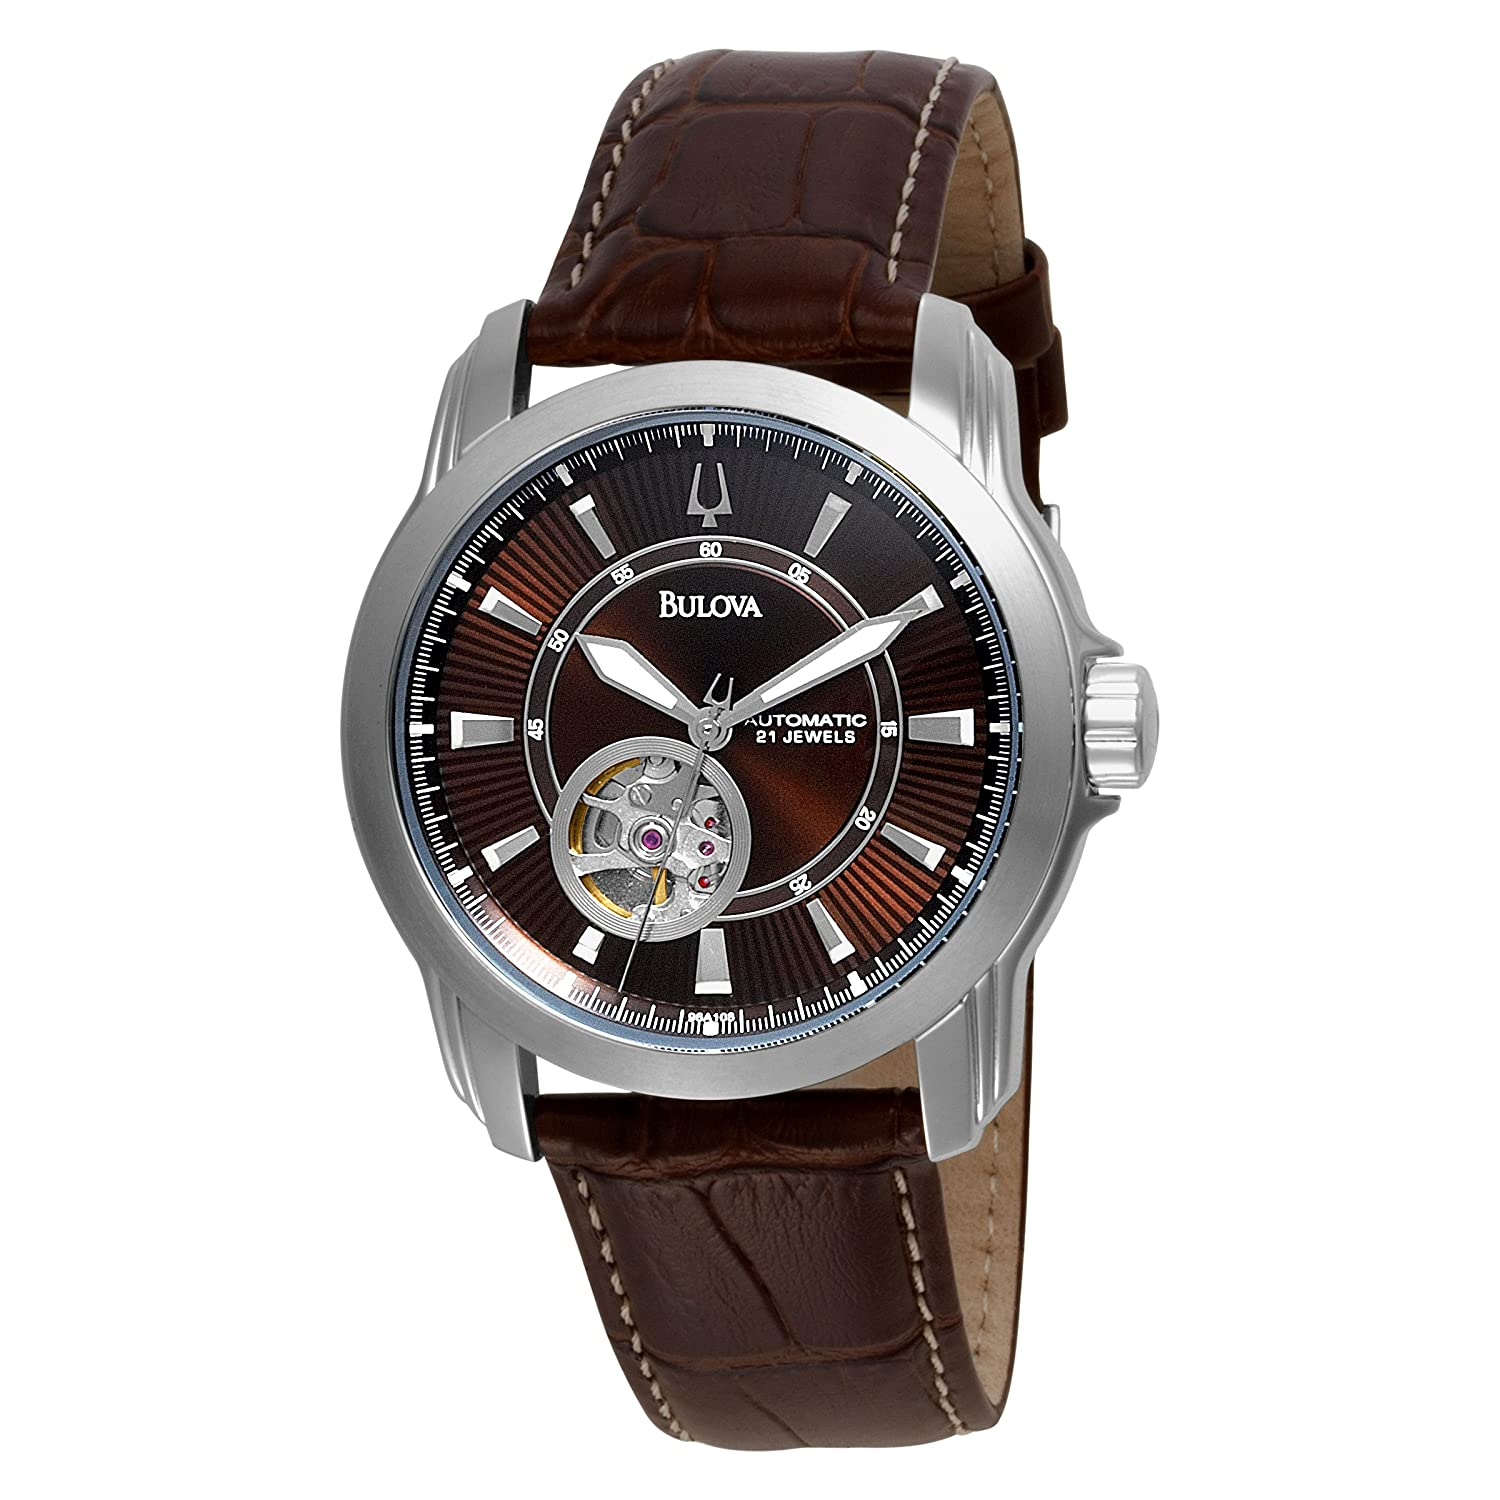 Ban dong ho Bulova Men's 96A108 Automatic - Brand New